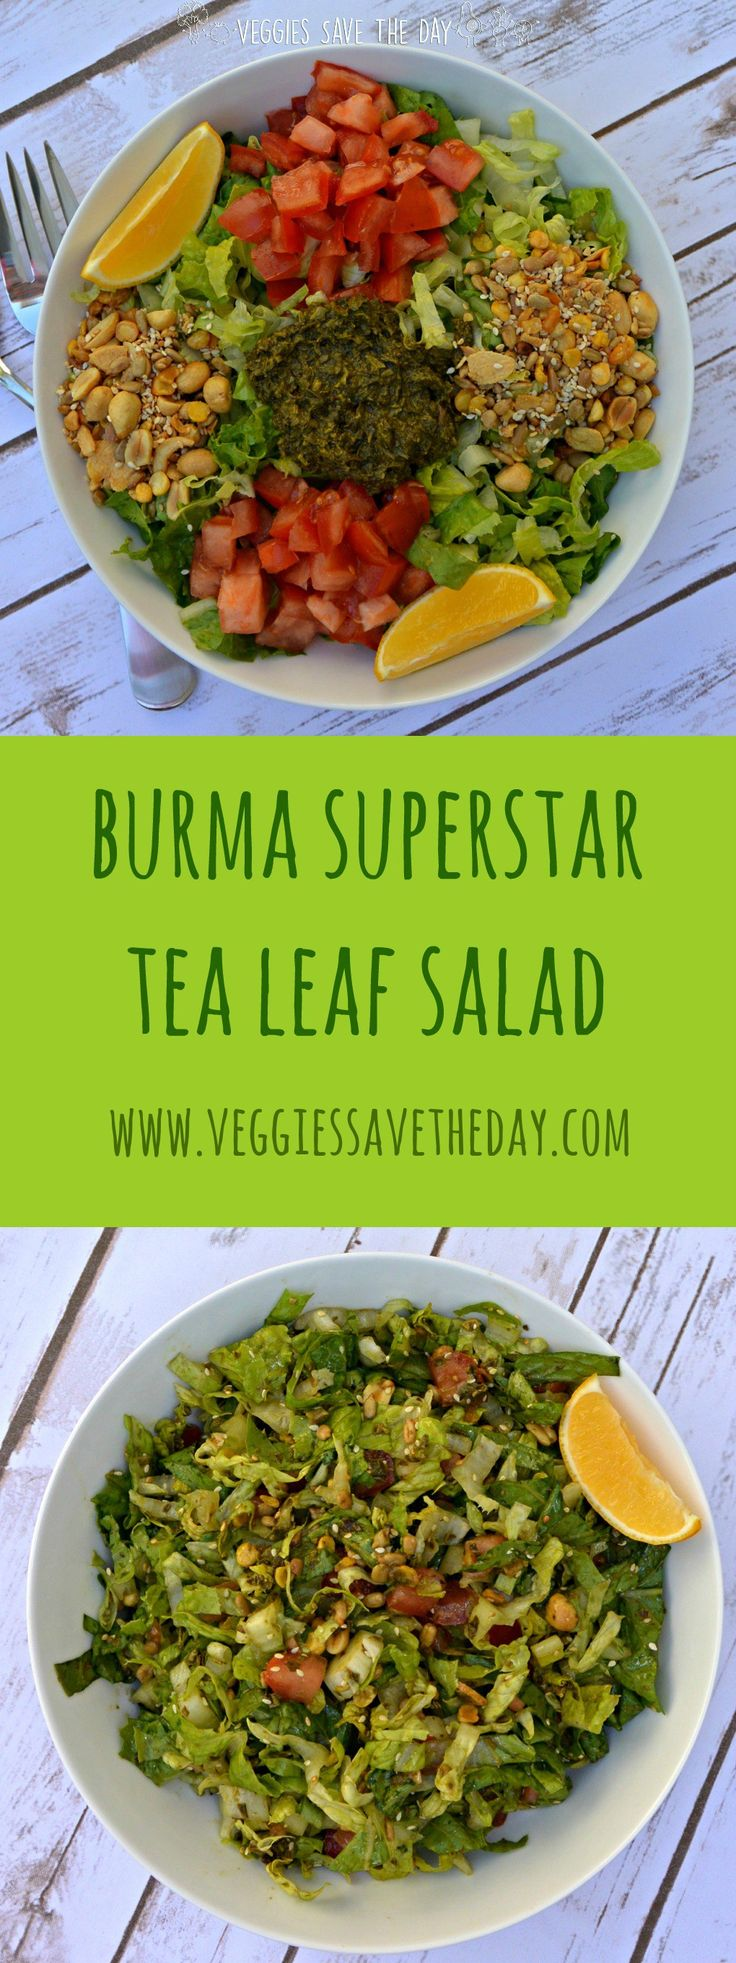 Now you can make the famous Tea Leaf Salad from Burma Superstar at home, thanks to their easy Burma Love Laphet Fermented Tea Leaf Salad Mix. . Get this recipe and more like this when you visit www.veggiessavetheday.com, or pin and save for later!